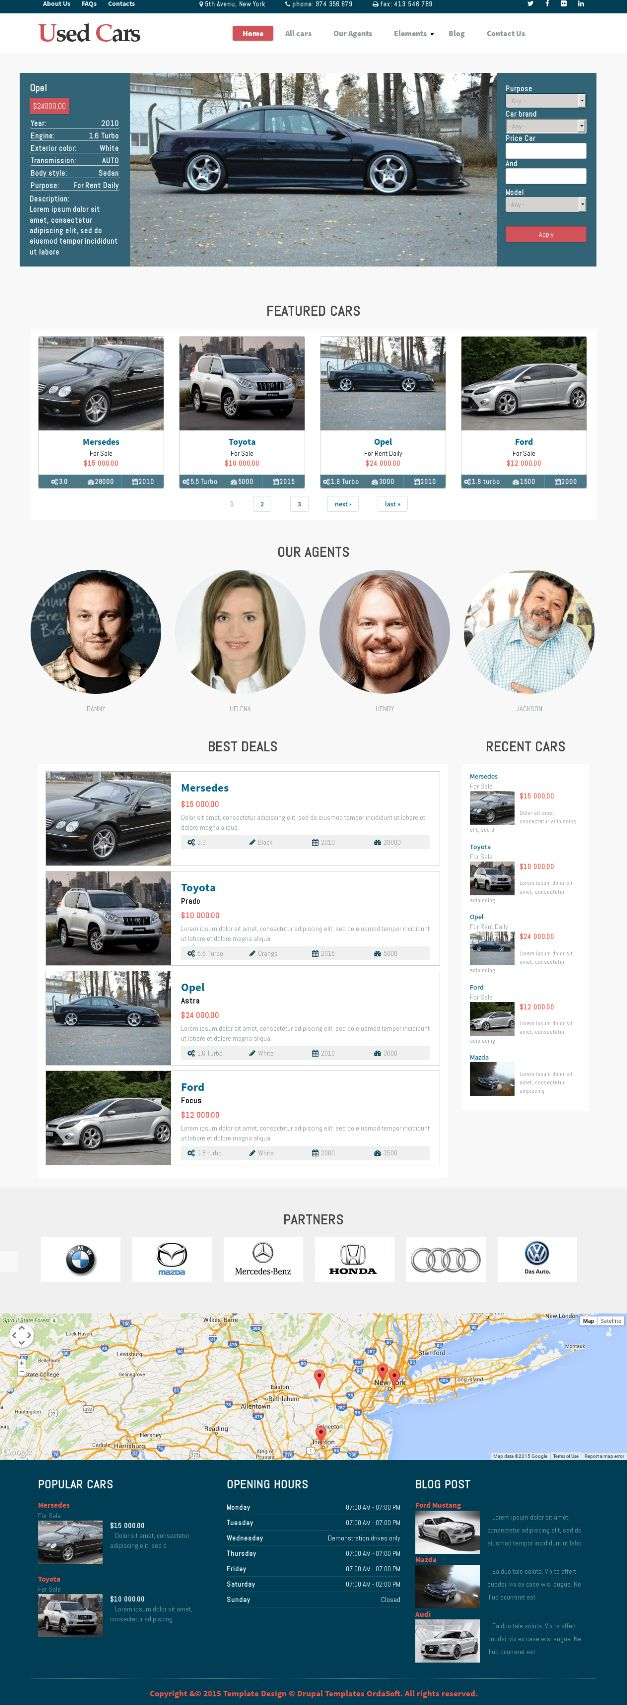 Used cars drupal theme is perfect for auto dealers car classified sites car dealer websites and car rental